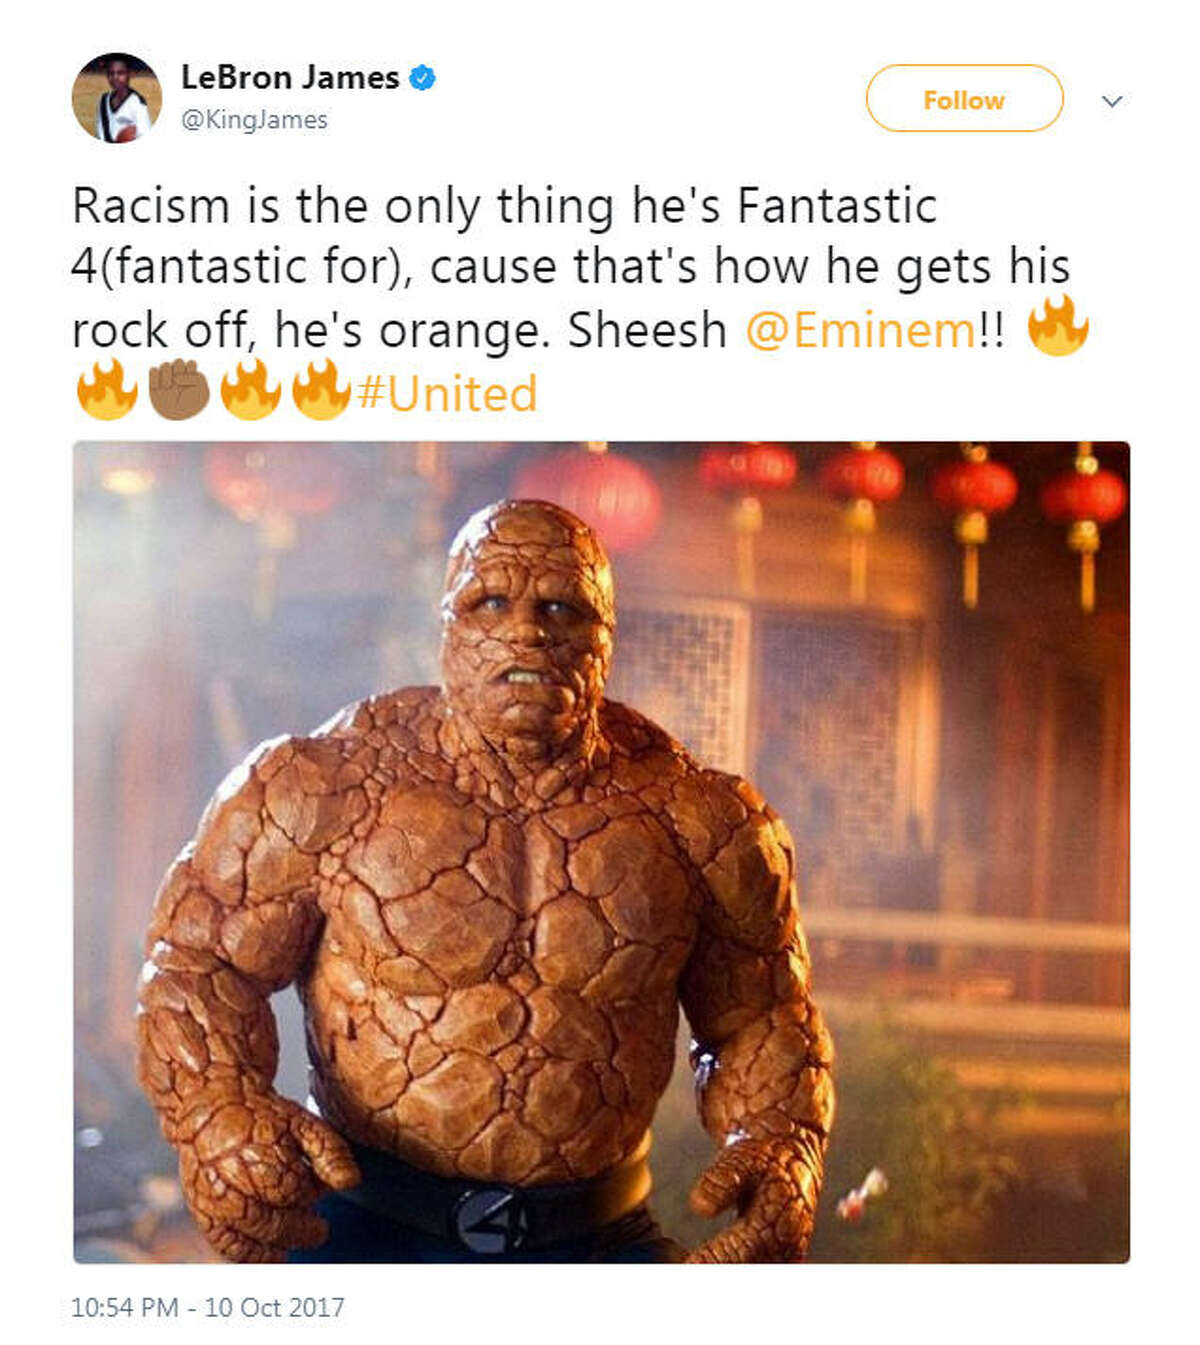 """""""Racism is the only thing he's Fantastic 4(fantastic for), cause that's how he gets his rock off, he's orange. Sheesh @Eminem!!"""